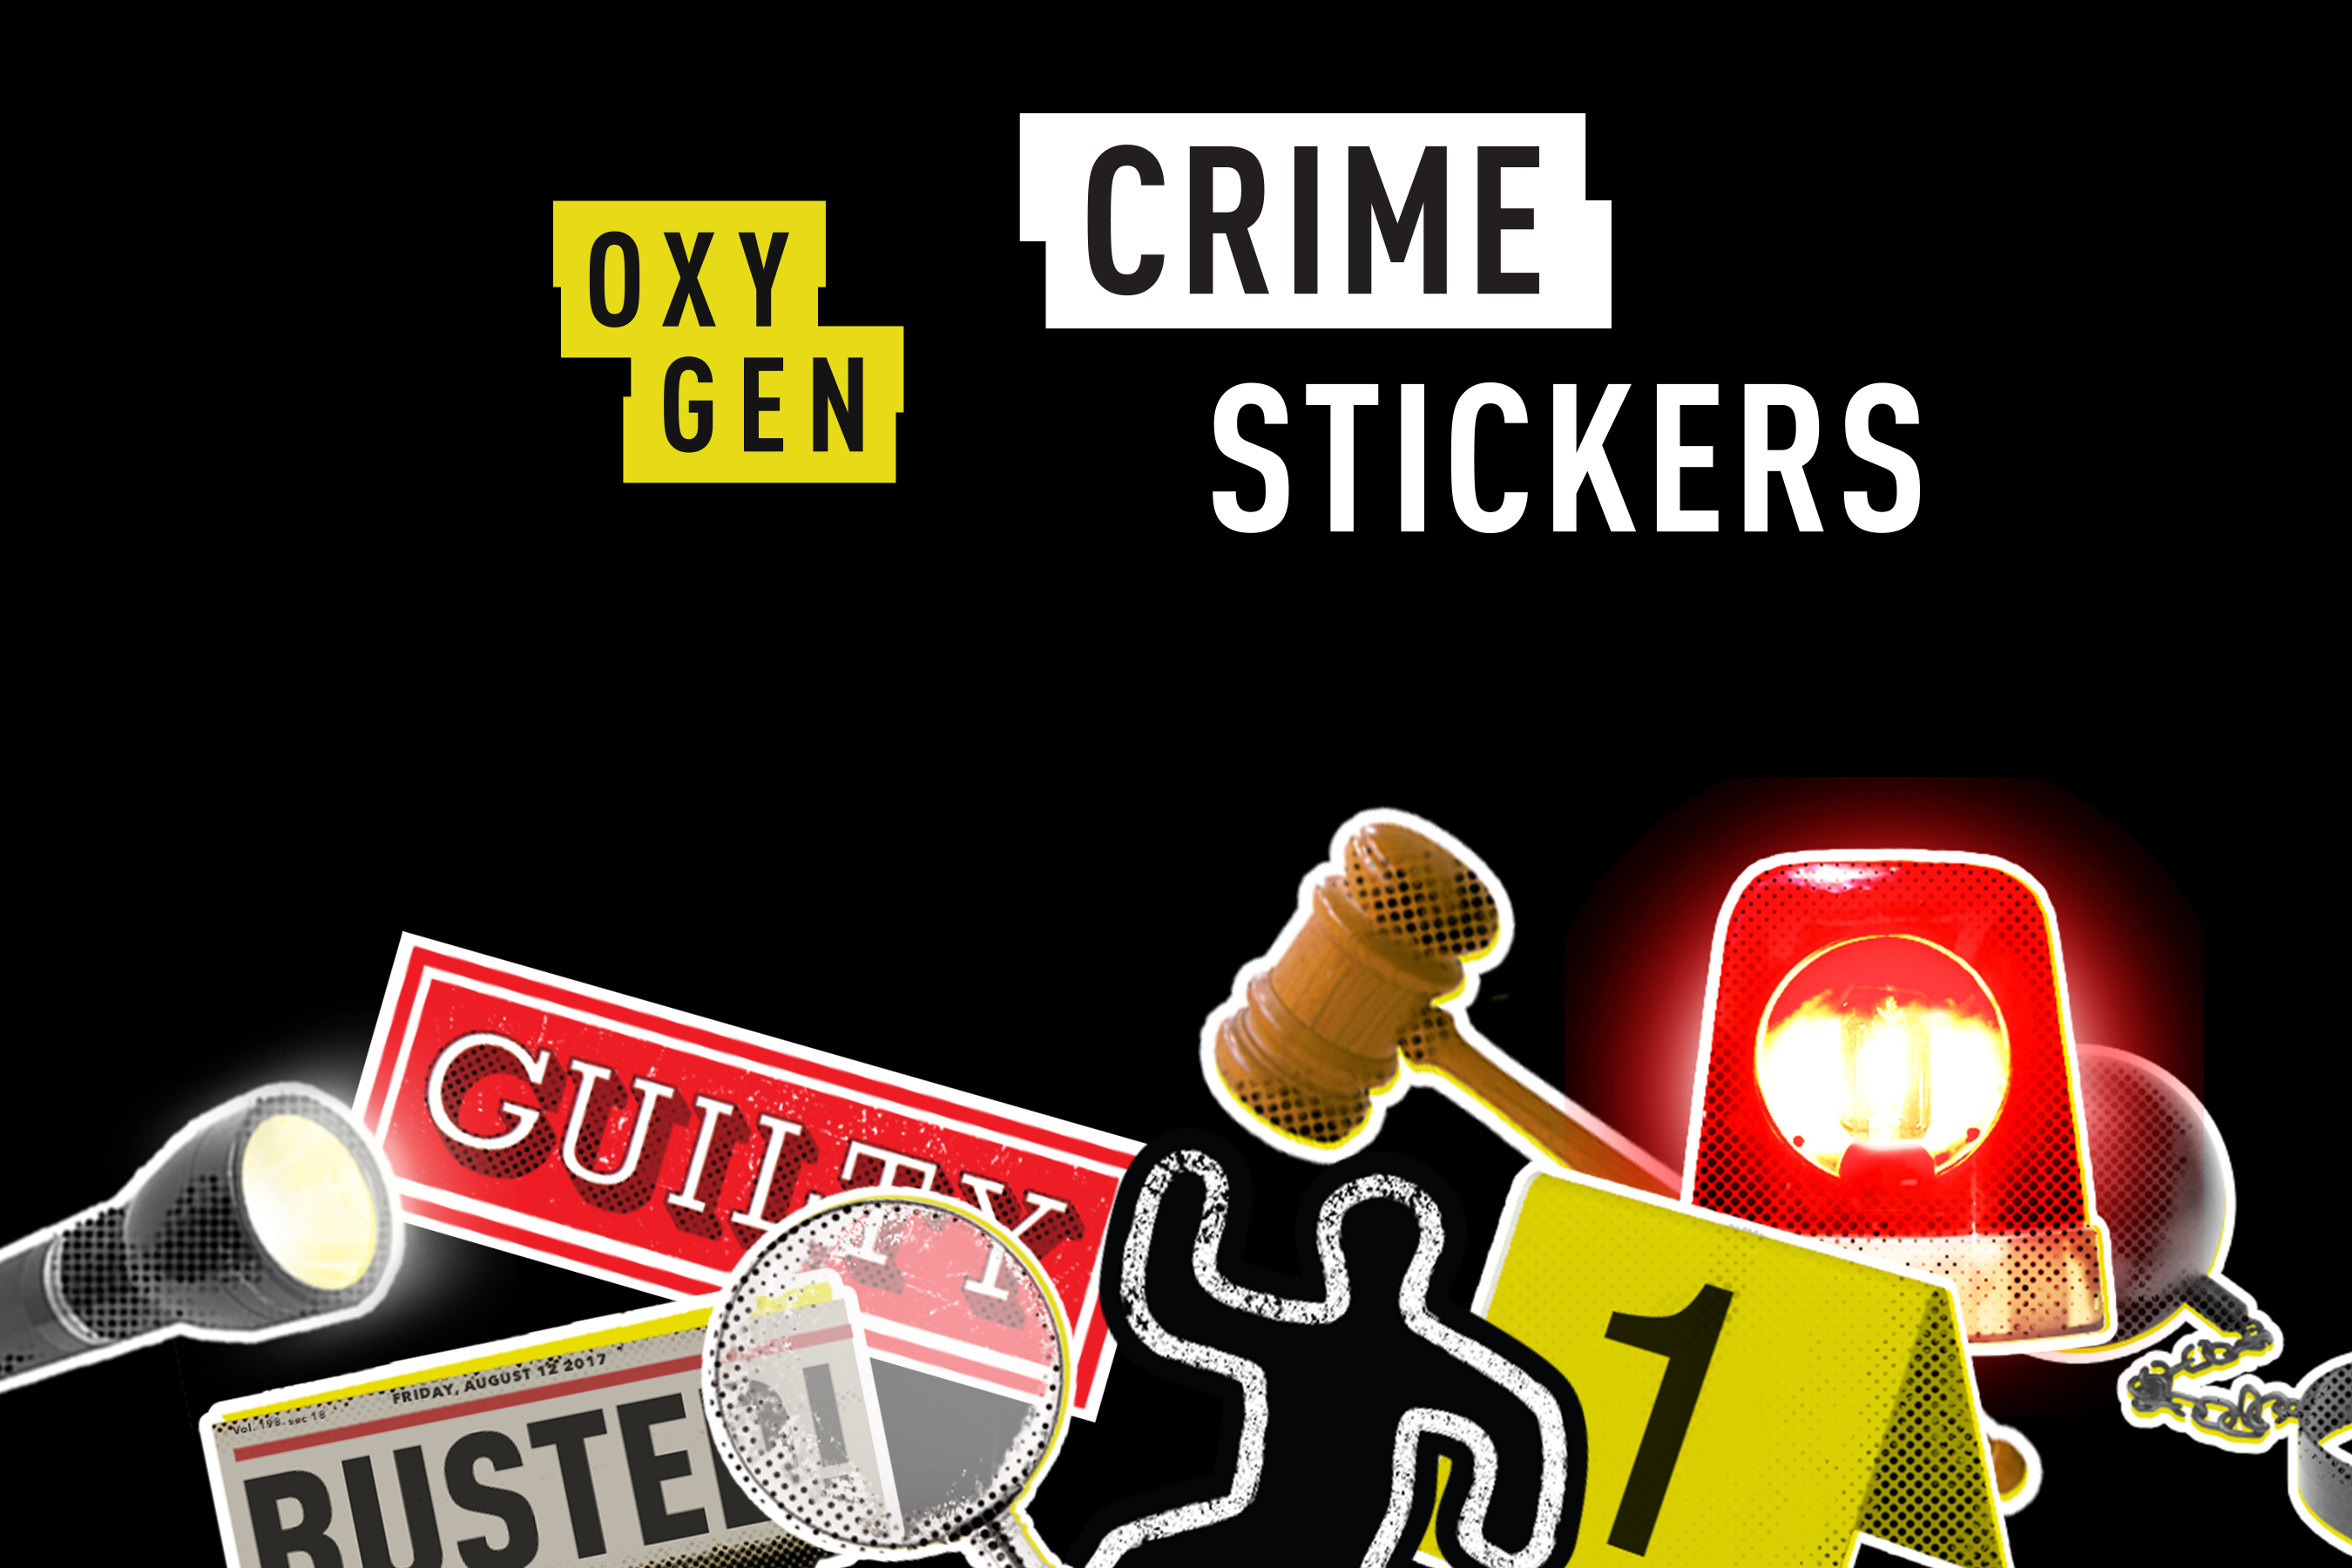 Oxygen Crime Stickers now available in the iOS App Store